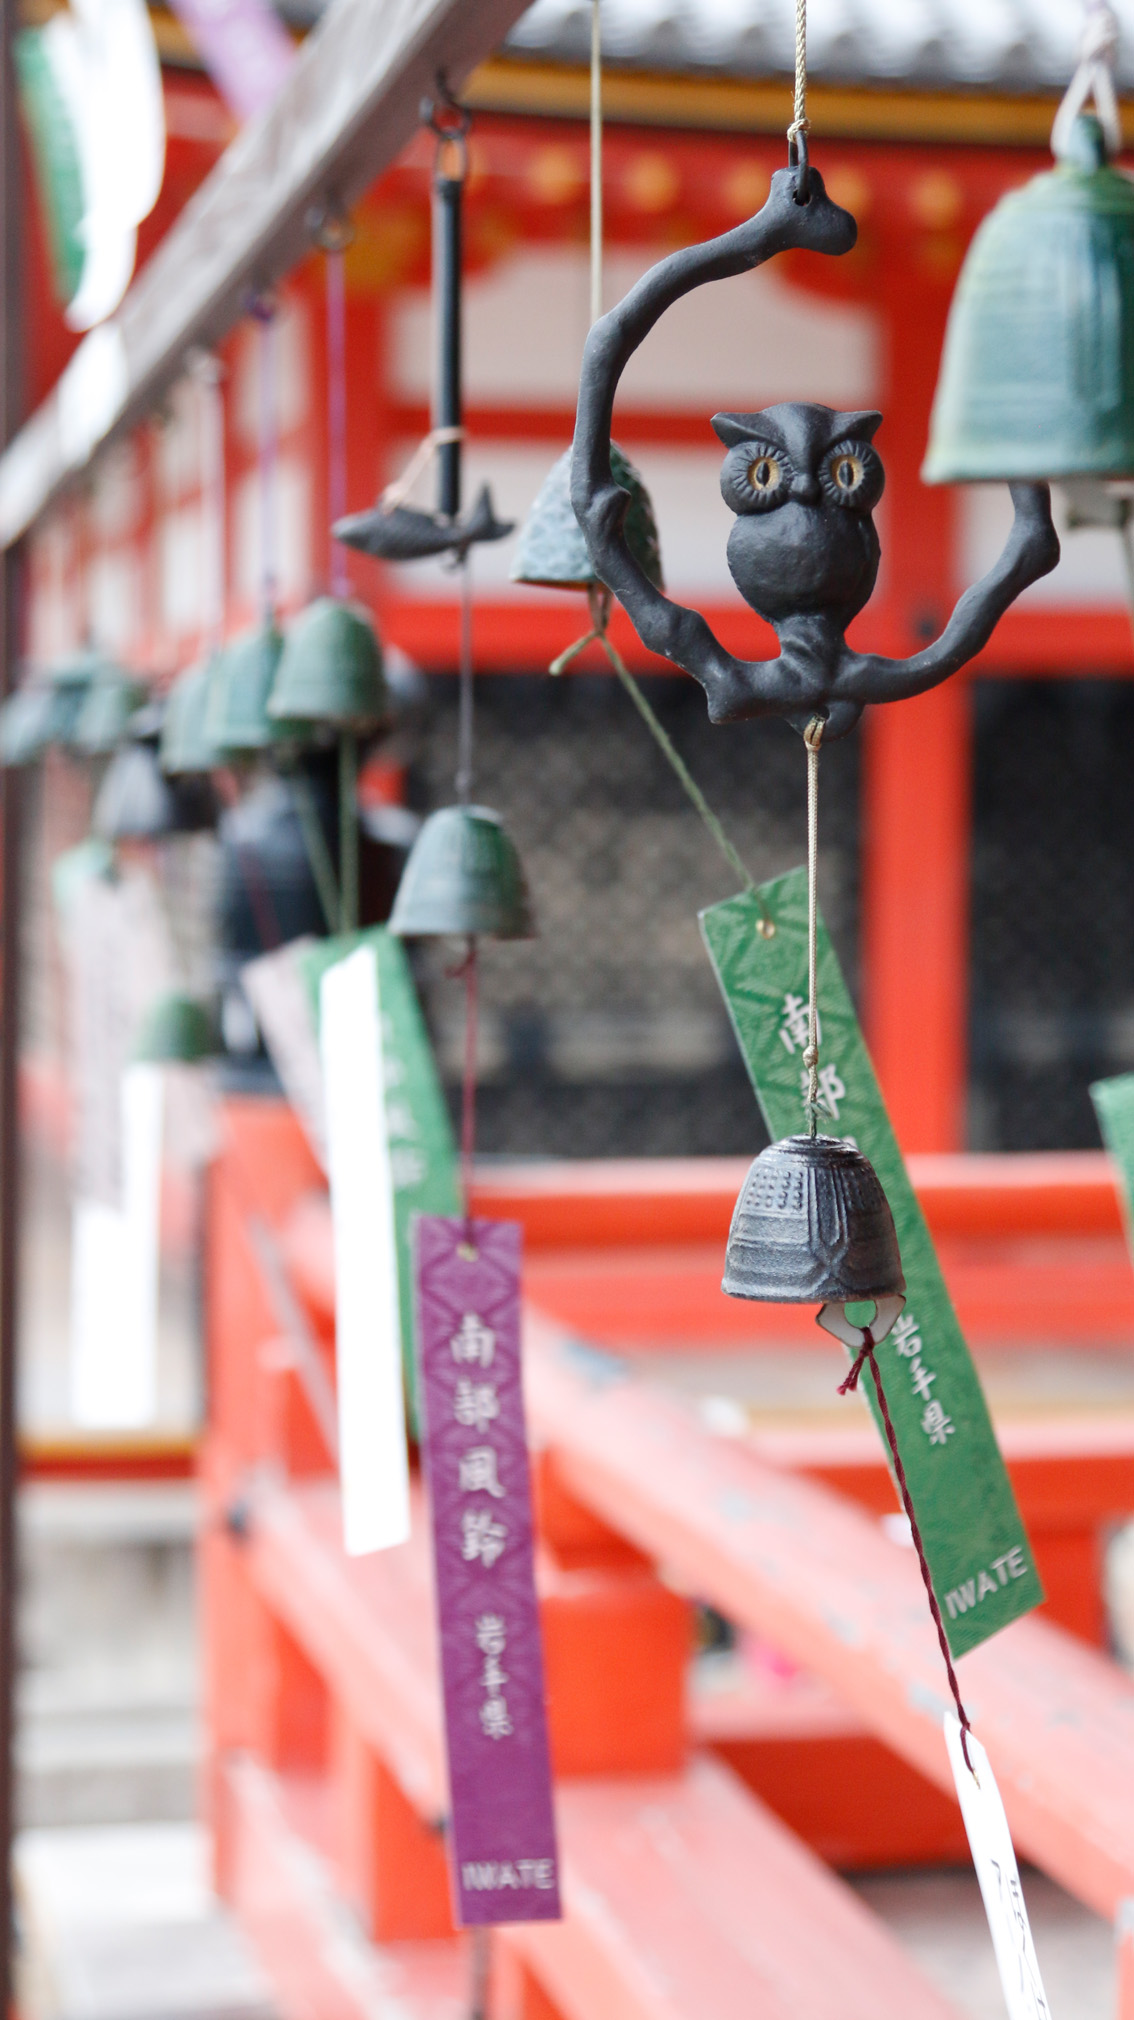 31 #Giappotour with Blueberry Travel: best places to see in Kyoto during a day.